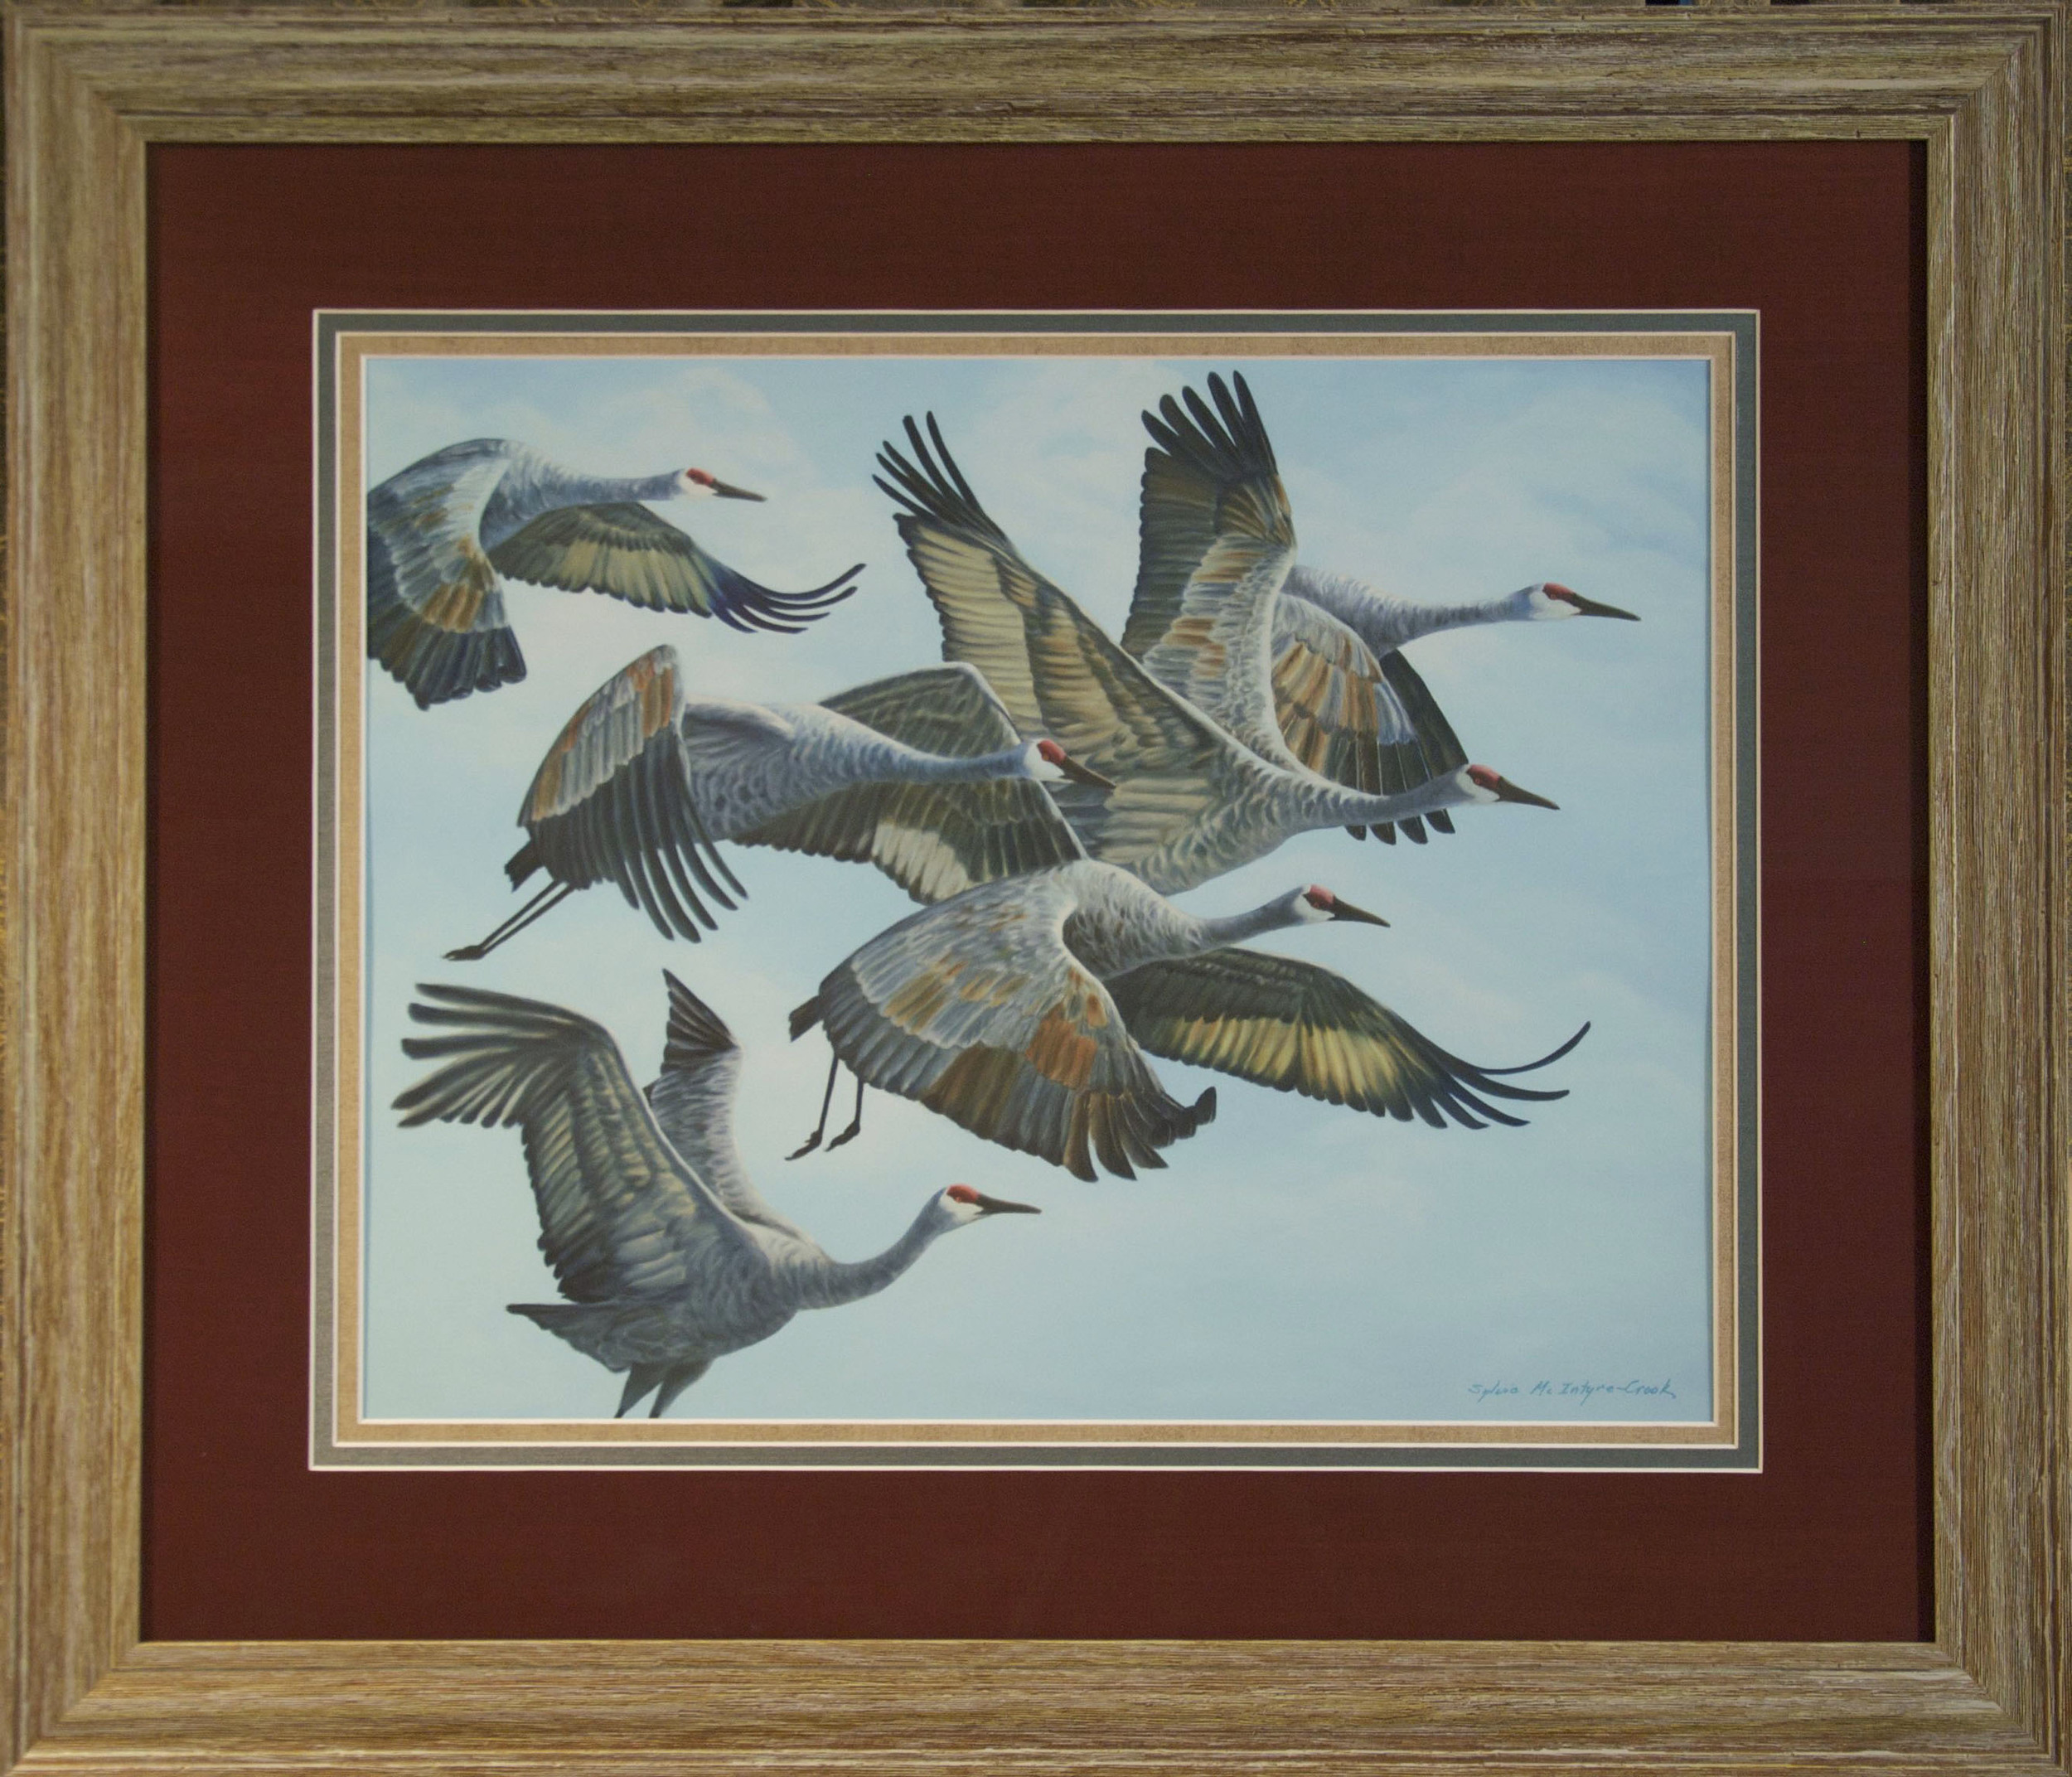 """Limited Edition Print: Sandhill Cranes in Flock, Aloft II; #2 of 30  print: 18"""" x 23""""; frame: 29.5"""" x 34""""; Ultrachrome HDR ink;  from original oil on canvass 'Sandhill Cranes in Flock, Aloft II'; 60x48  $550.00"""